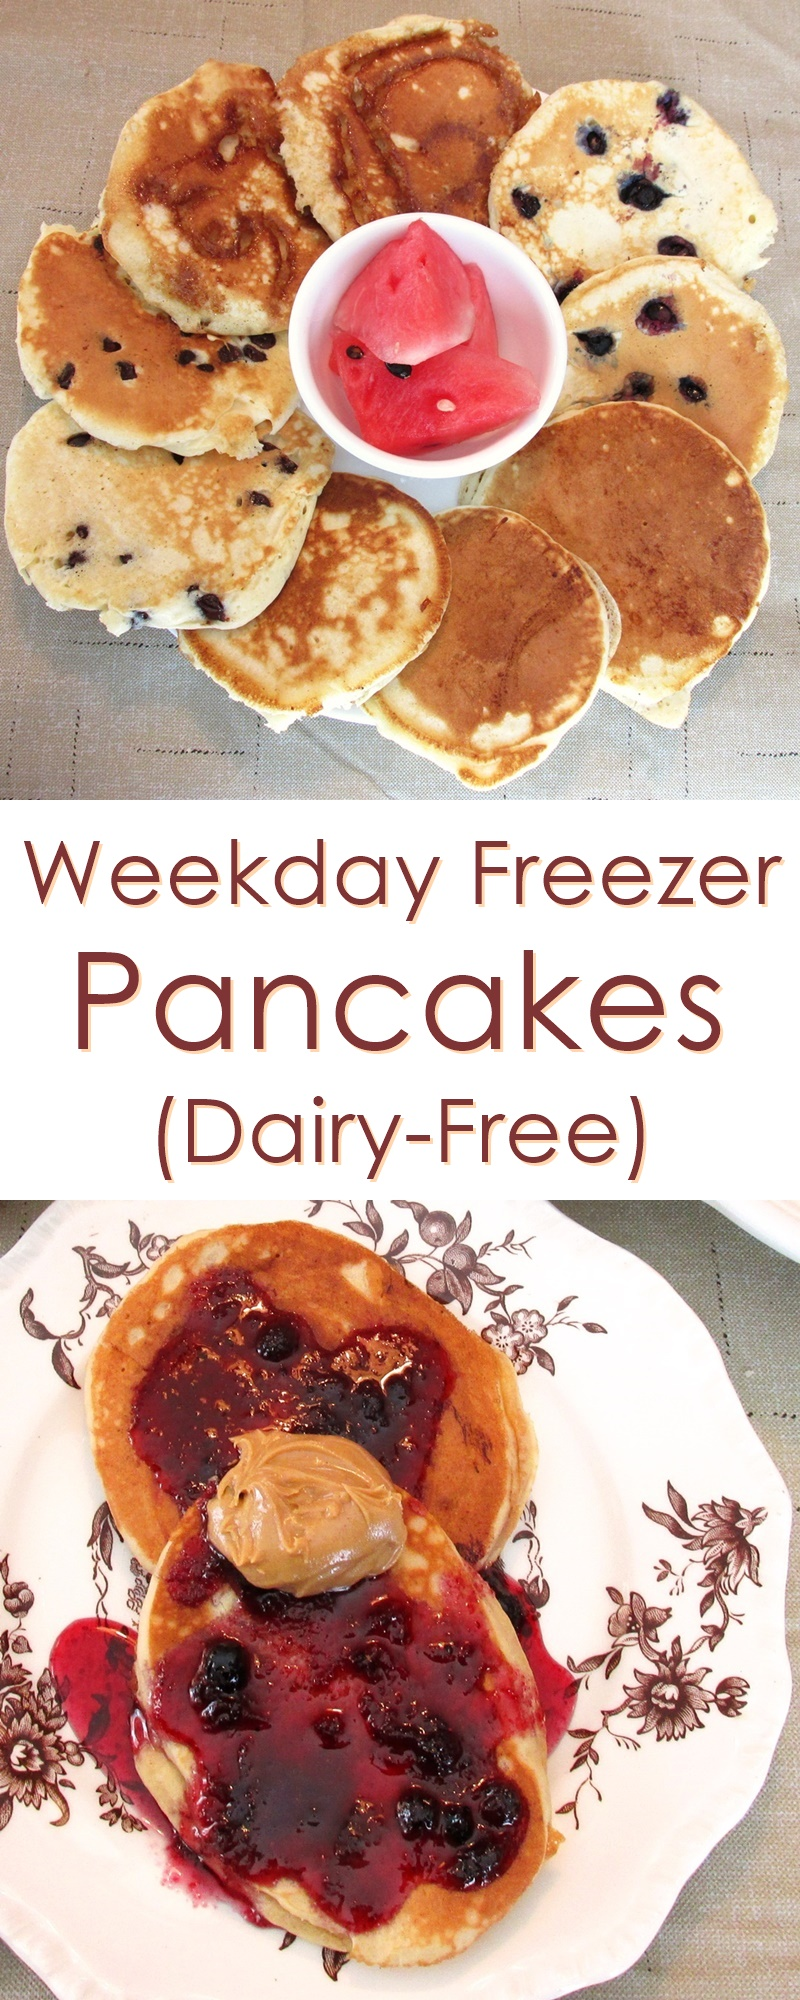 Dairy-free Freezer Pancakes Recipe - these easy, homemade frozen pancakes are perfect for weekdays, workdays and back to school